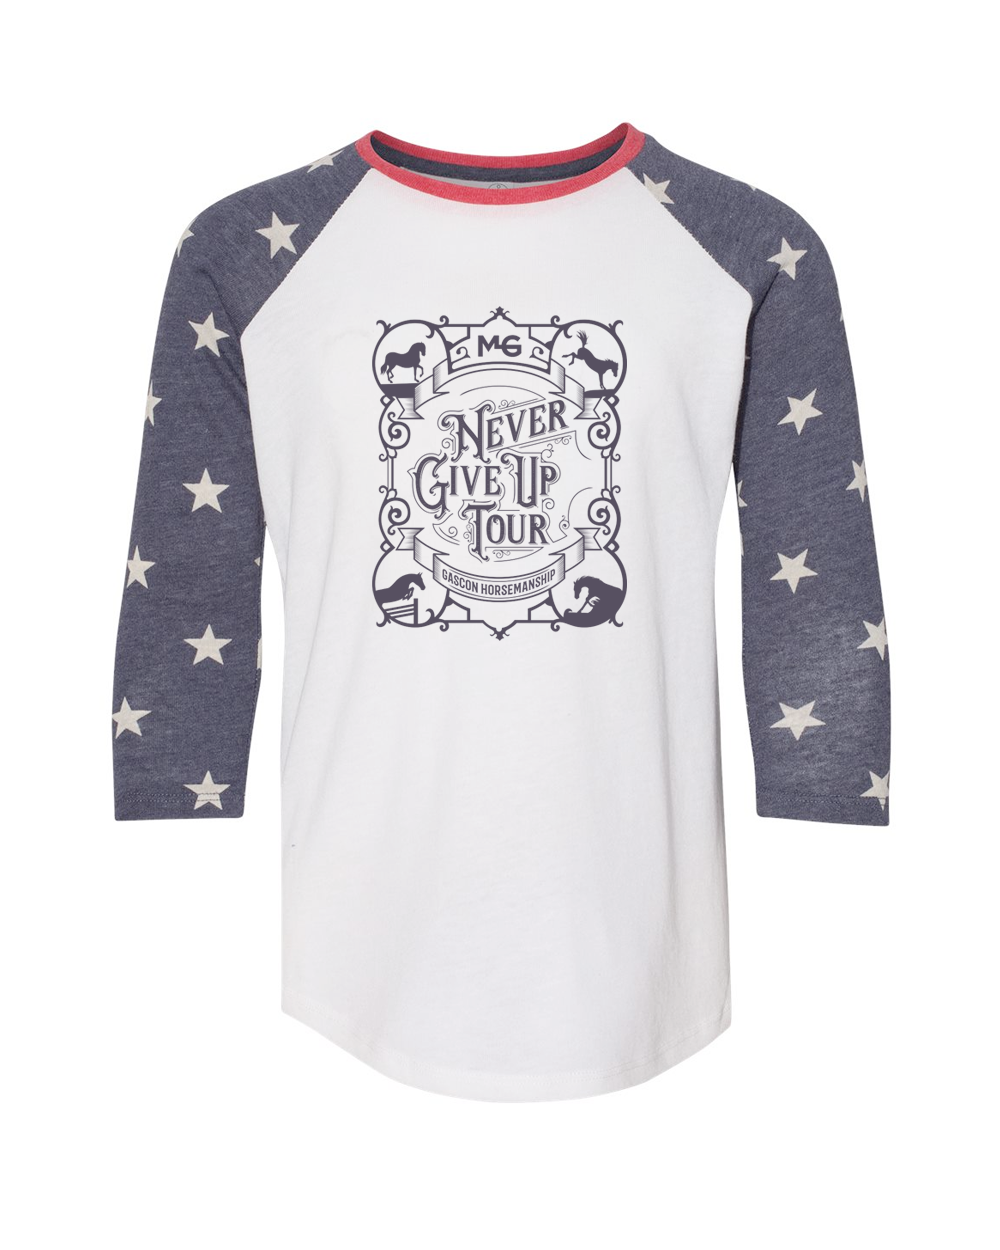 thg-never-give-up-youth-raglan_image